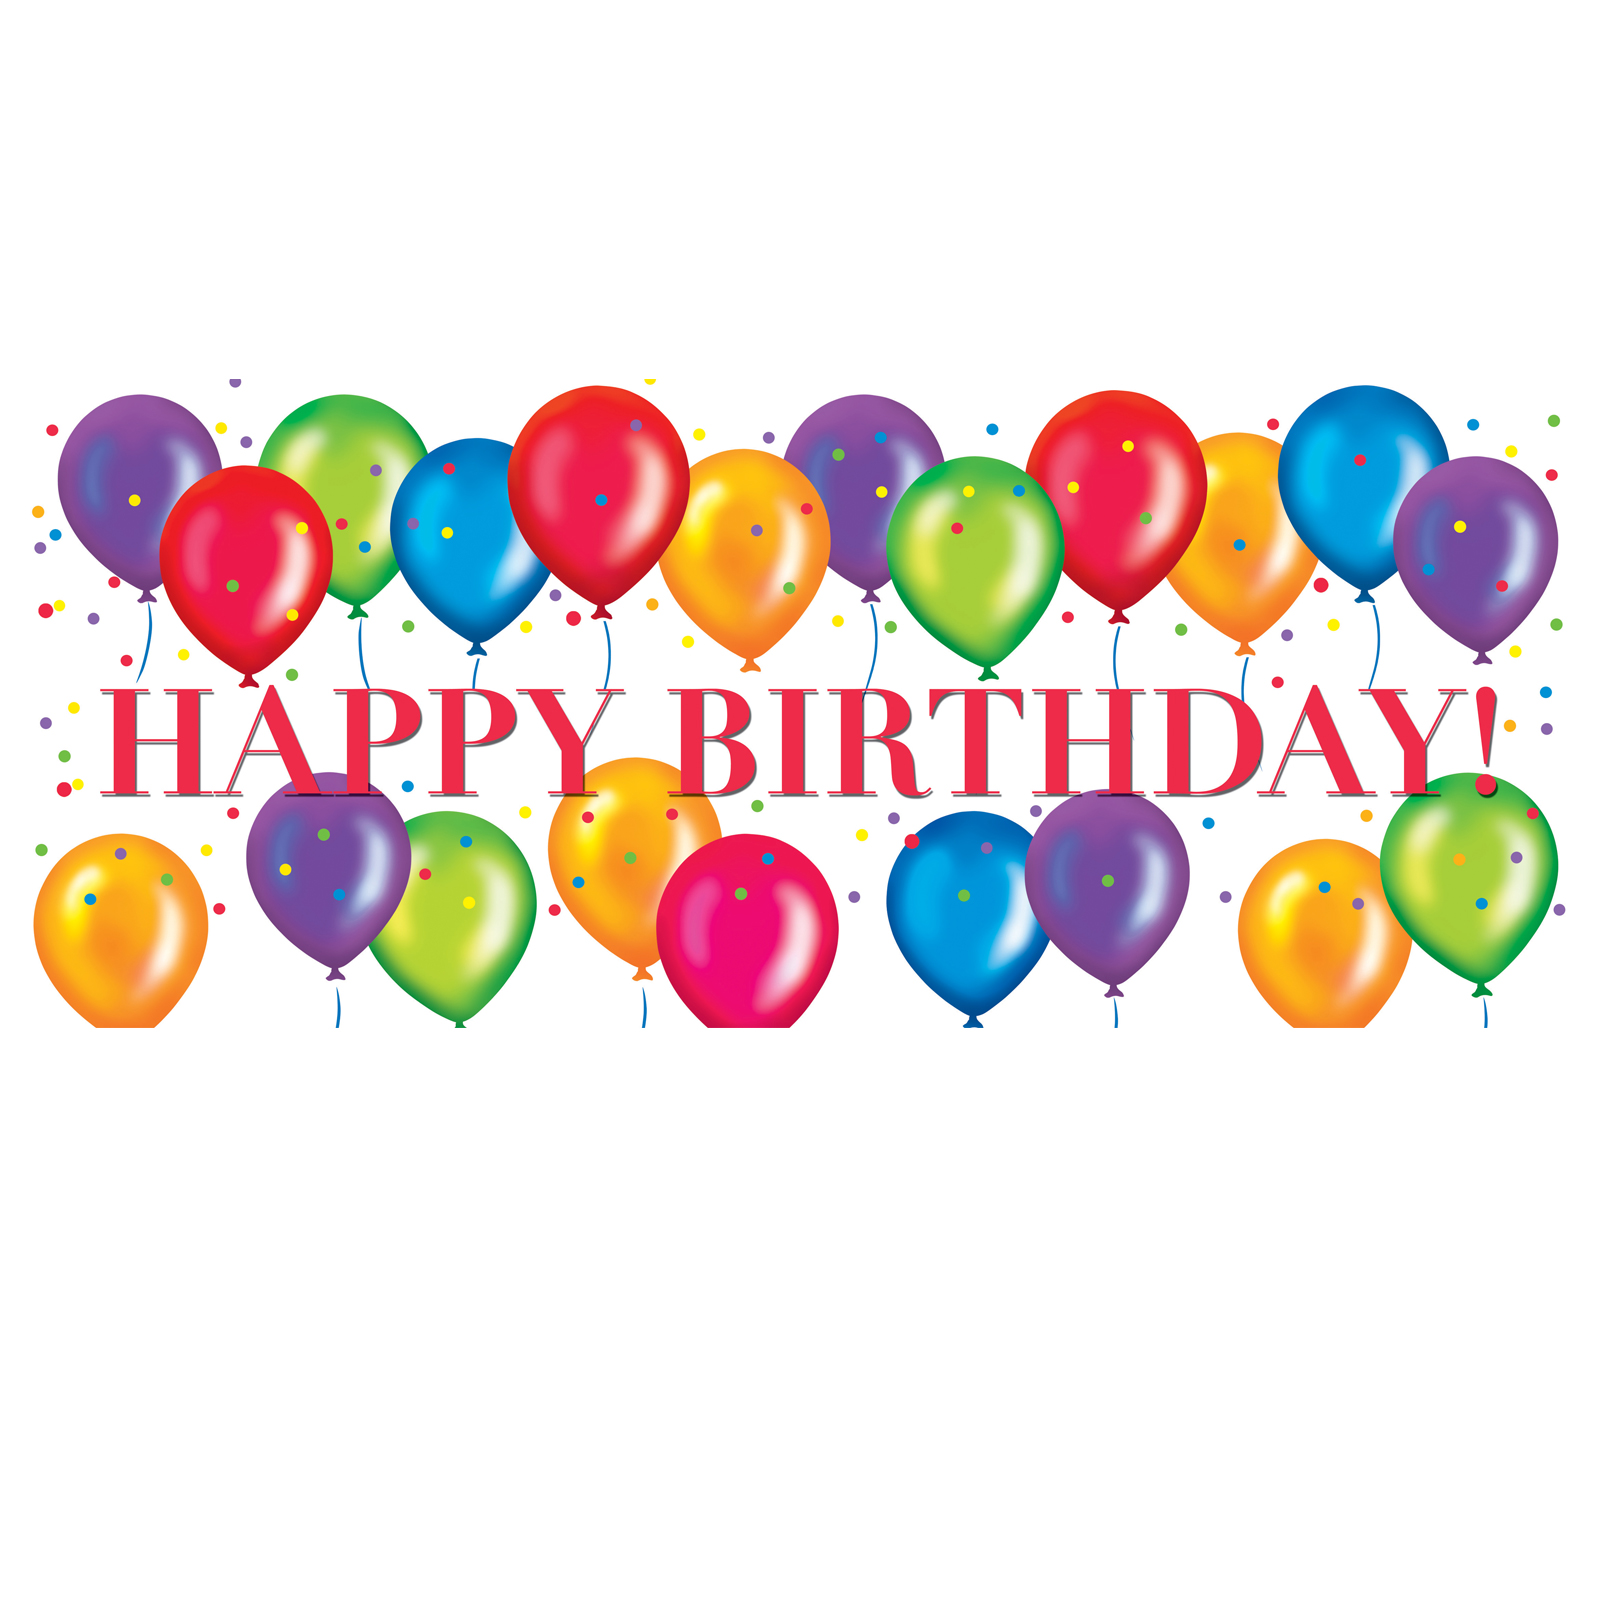 1600x1600 Free Happy Birthday Clip Art Image